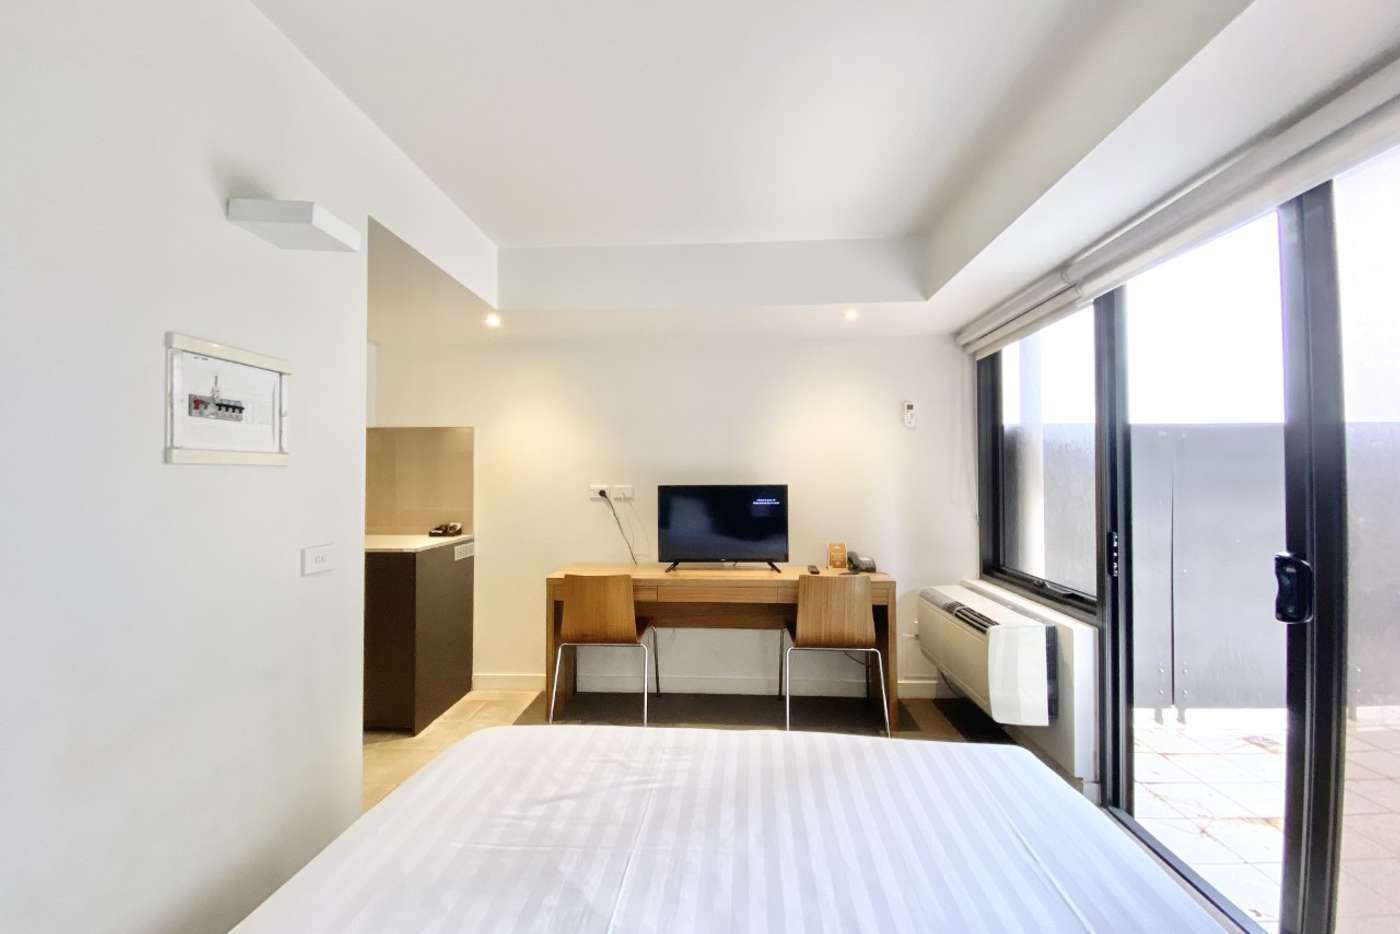 Seventh view of Homely studio listing, 432/572 St Kilda Road, Melbourne VIC 3004